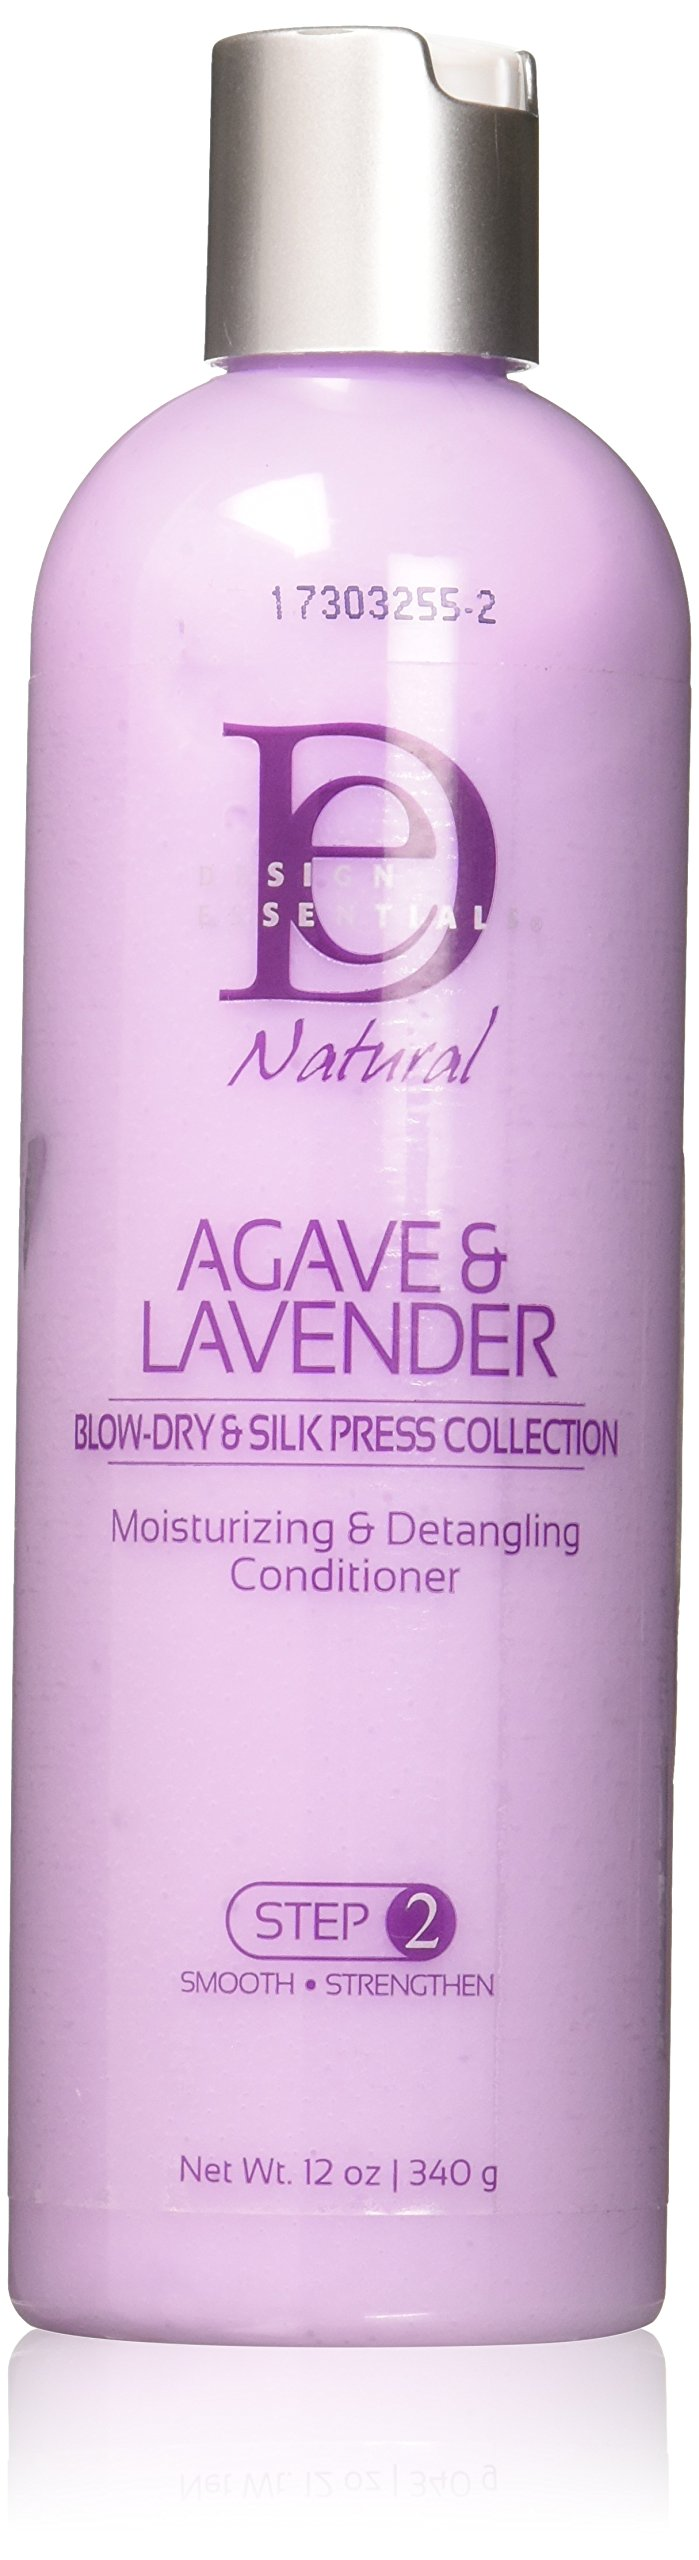 Design Essentials Silk Press Ingredients: Amazon.com : Design Essentials Agave 6 Lavender Moisturizing rh:amazon.com,Design